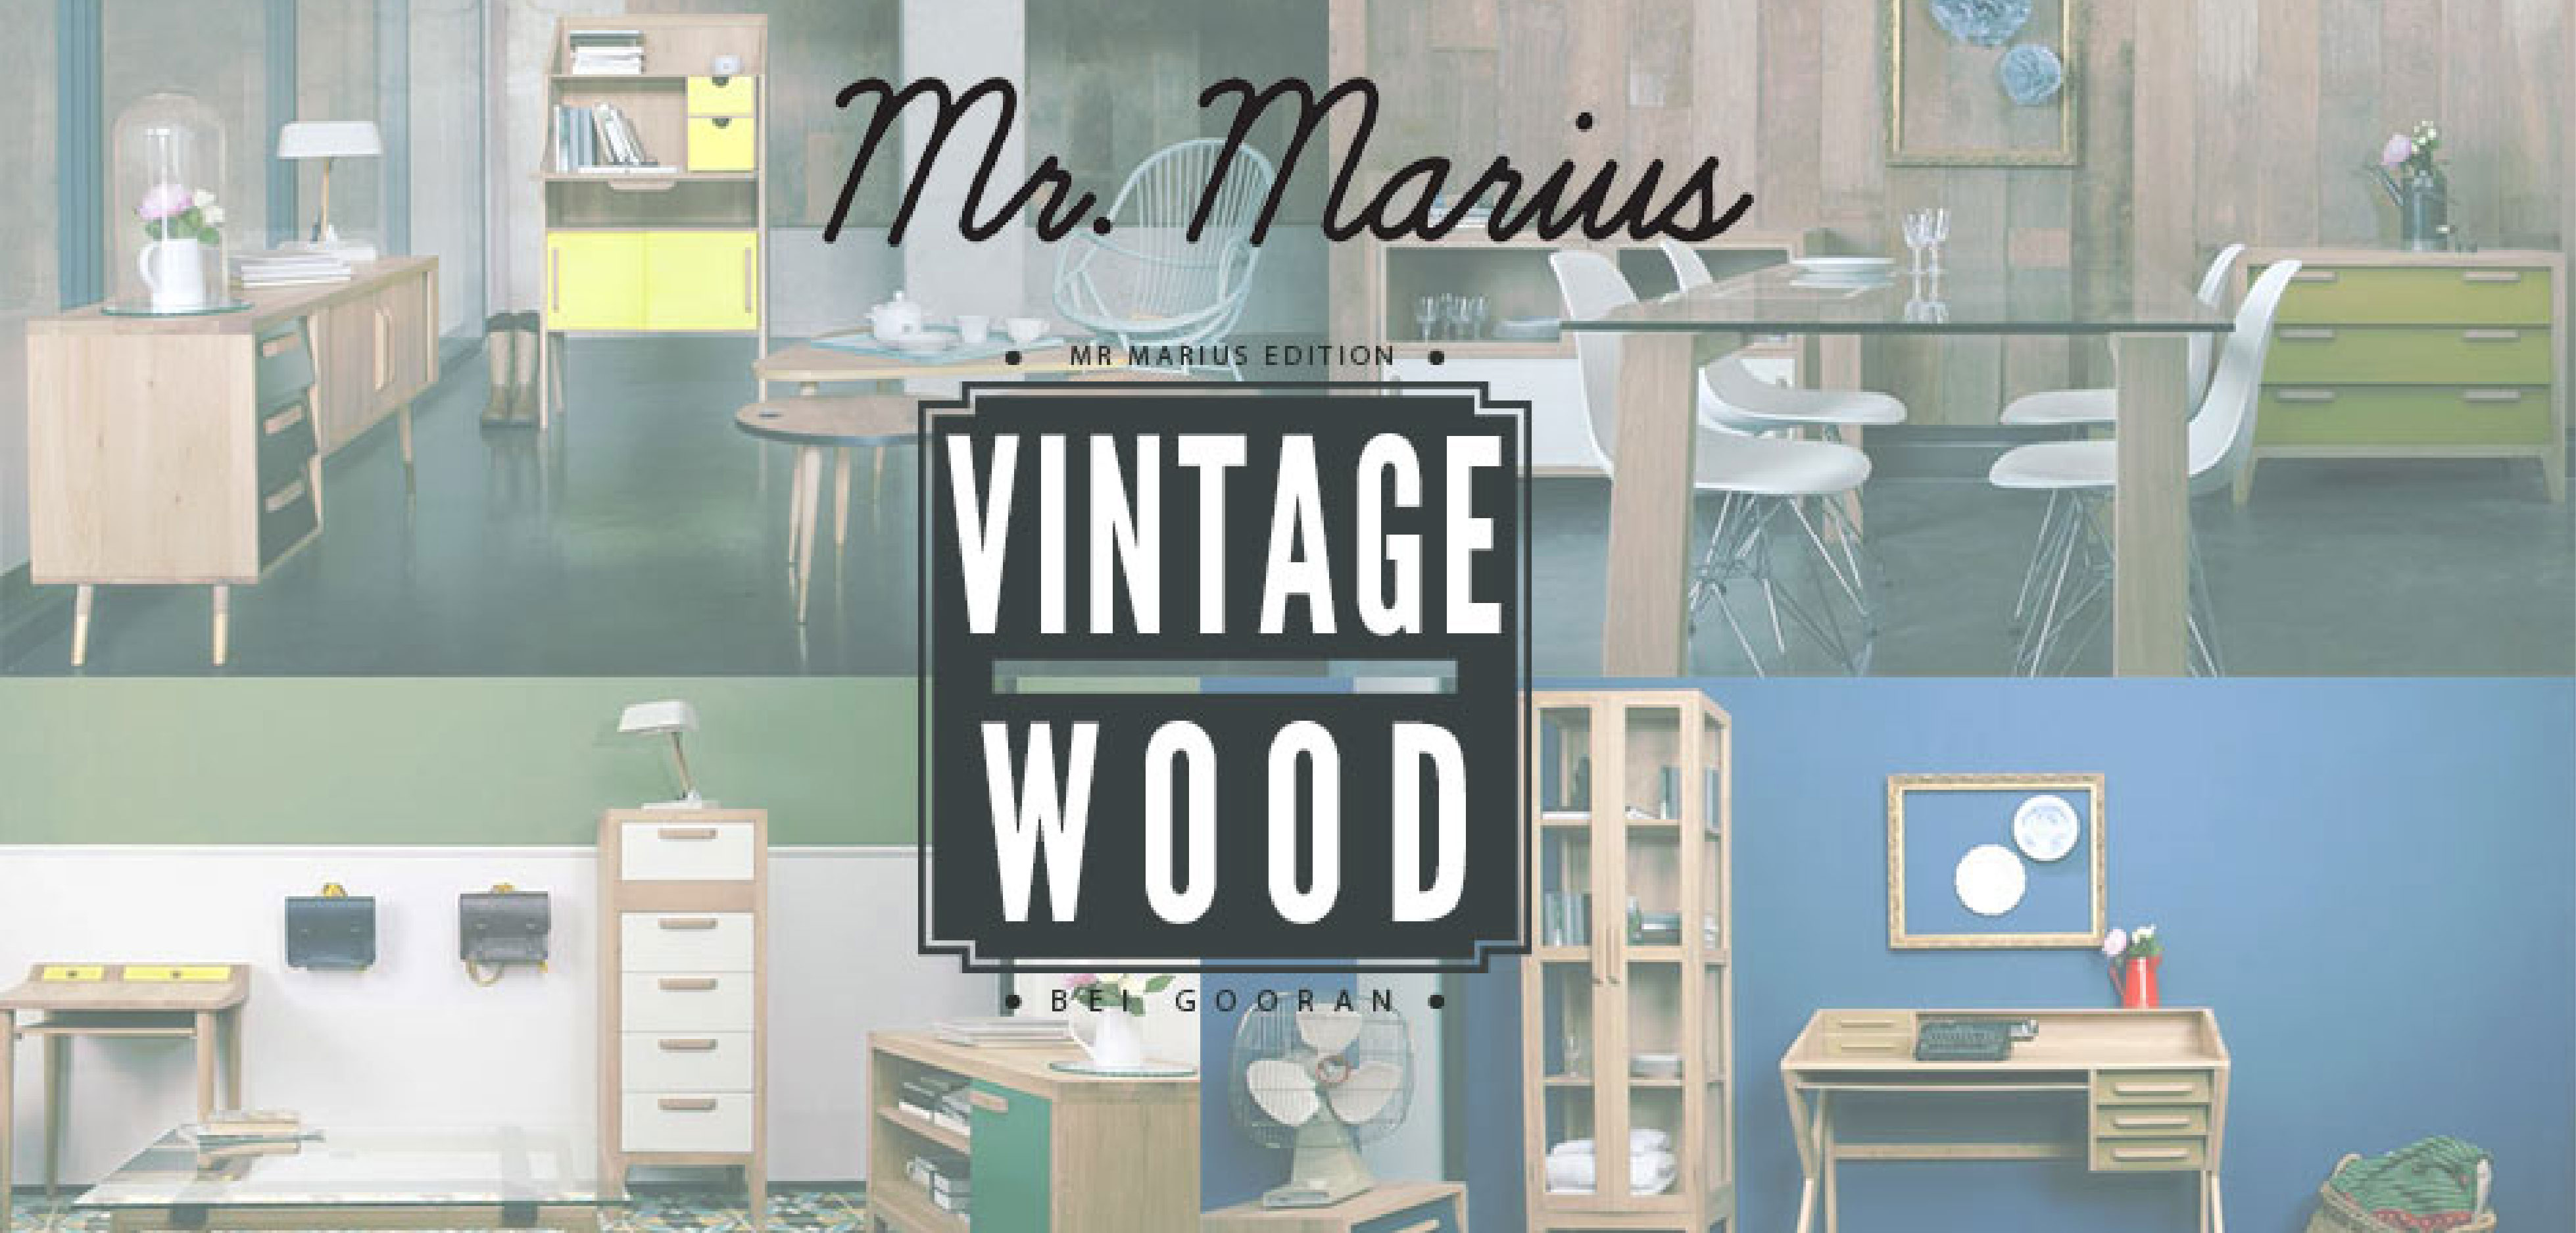 Retro-Design von Mr. Marius